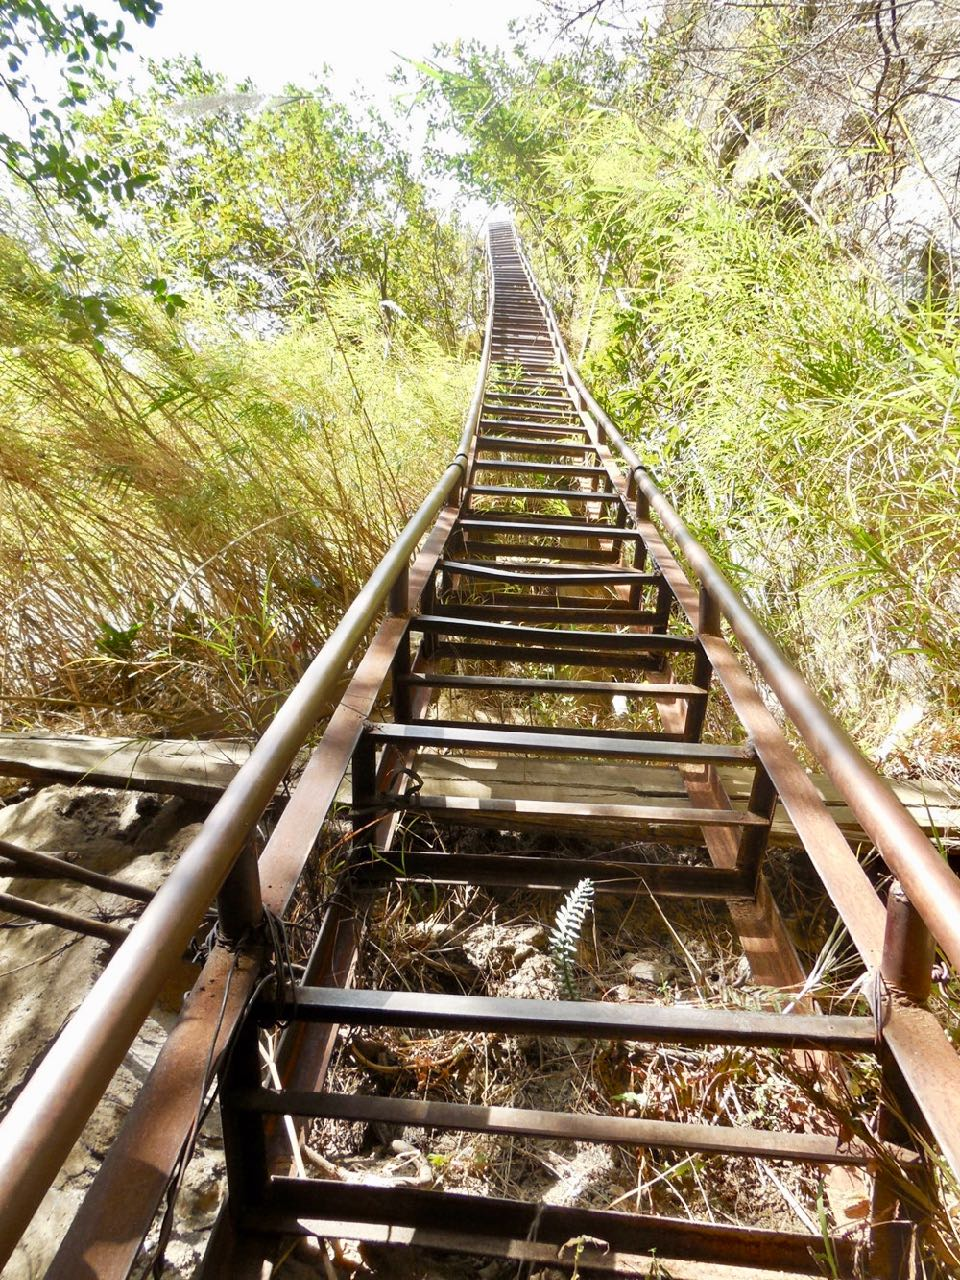 tiger-leaping-gorge-ladder